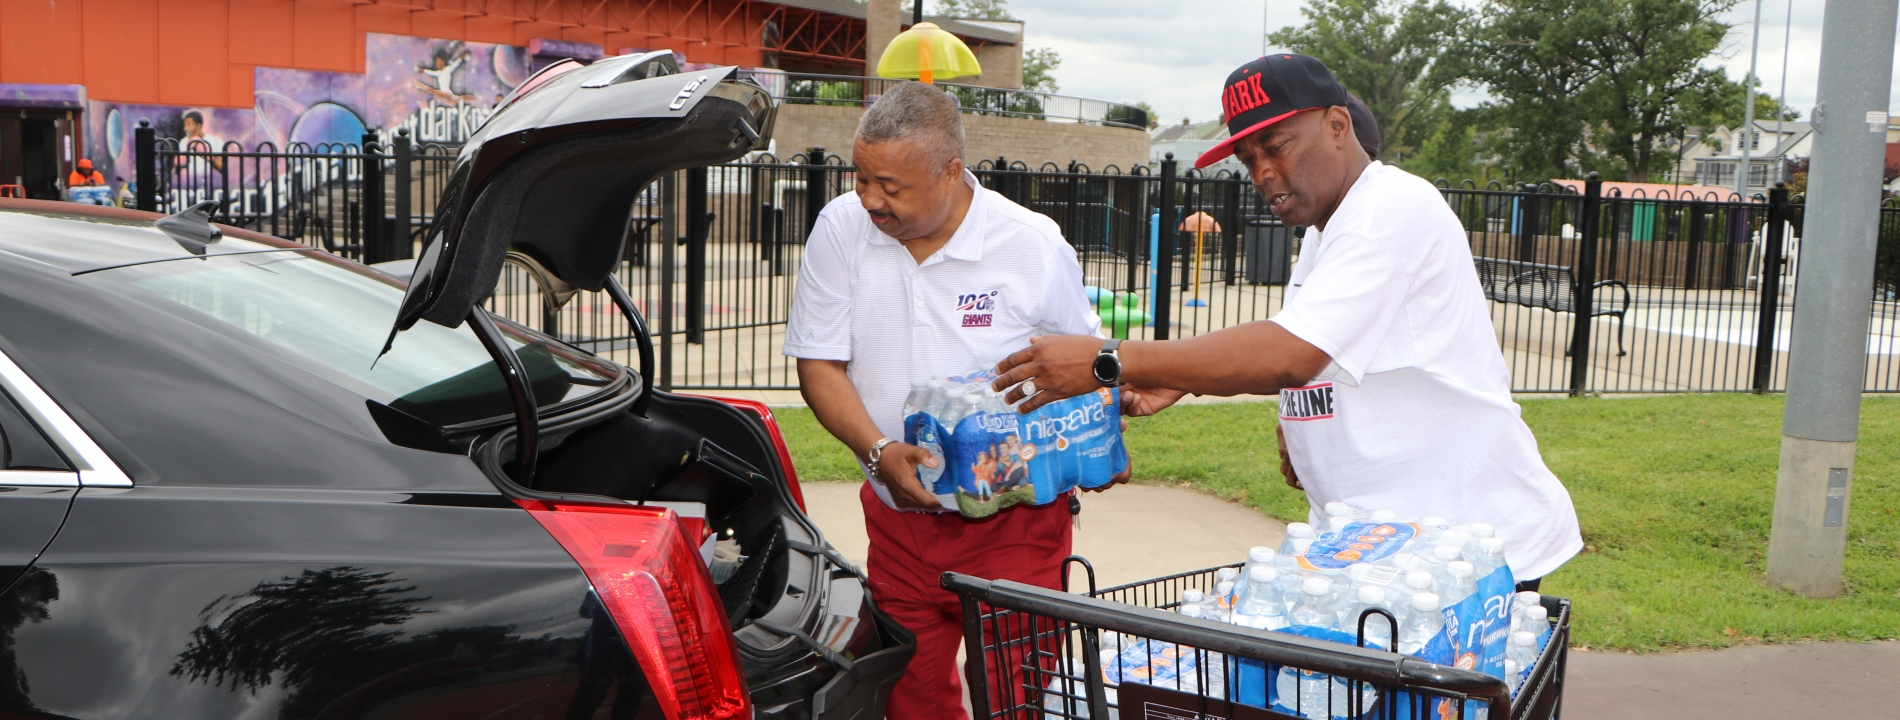 Rep. Payne, Jr. visits Two Newark Facilities to Help Distribute Bottled Water